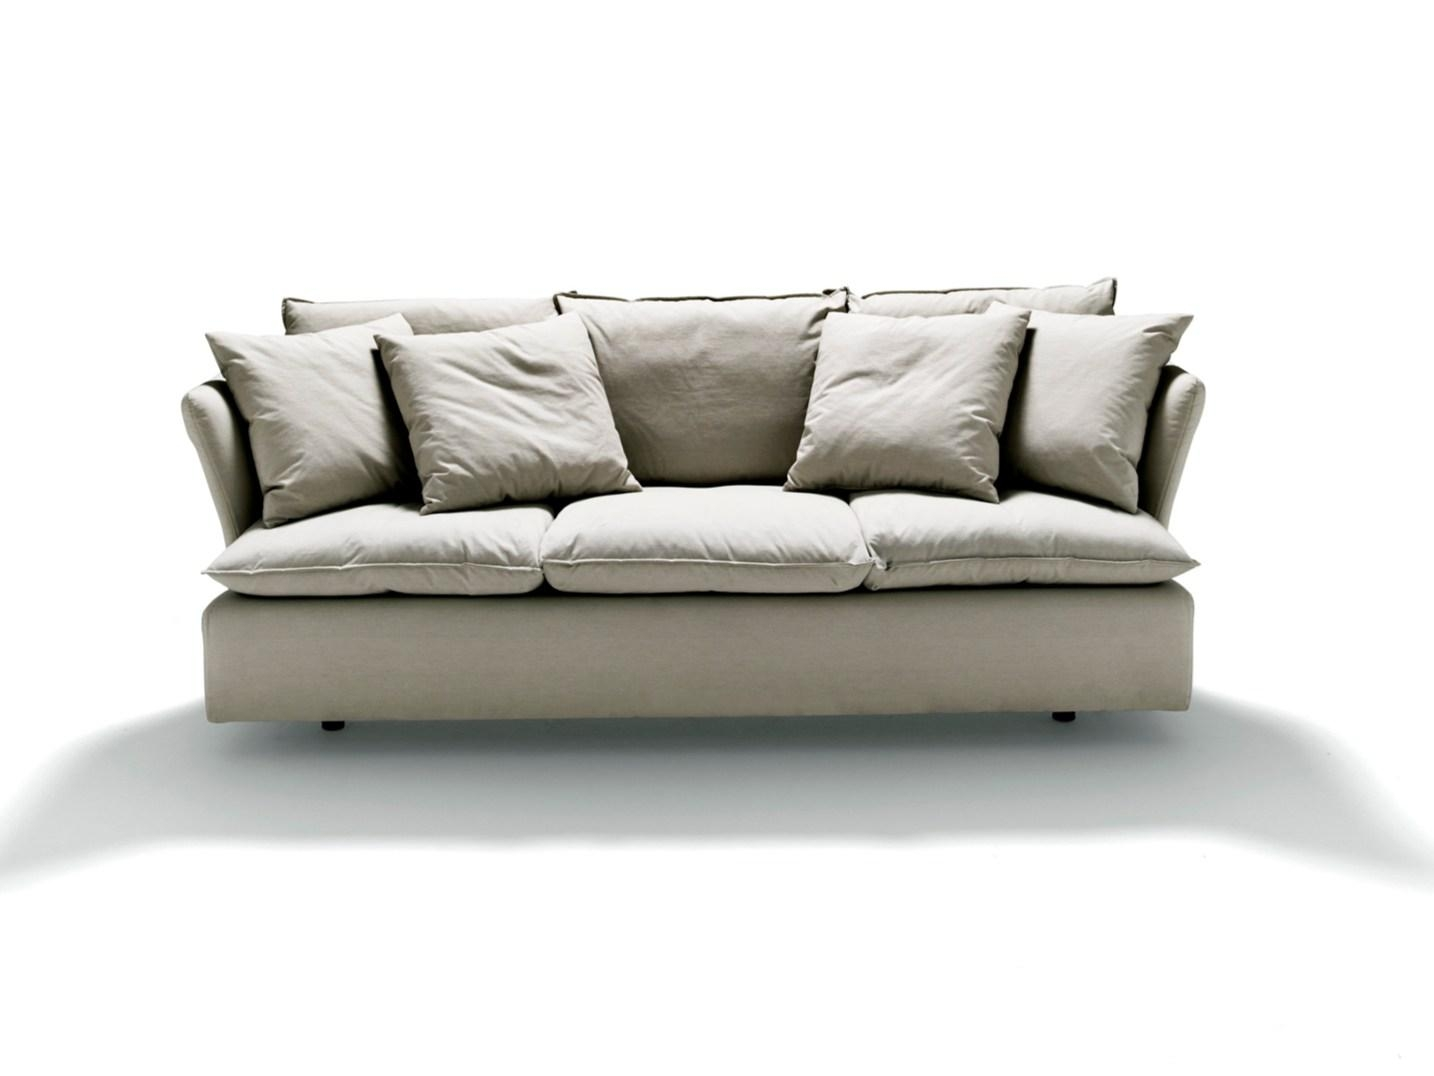 removable cover sofa dimensions uk 20 43 choices of with ideas